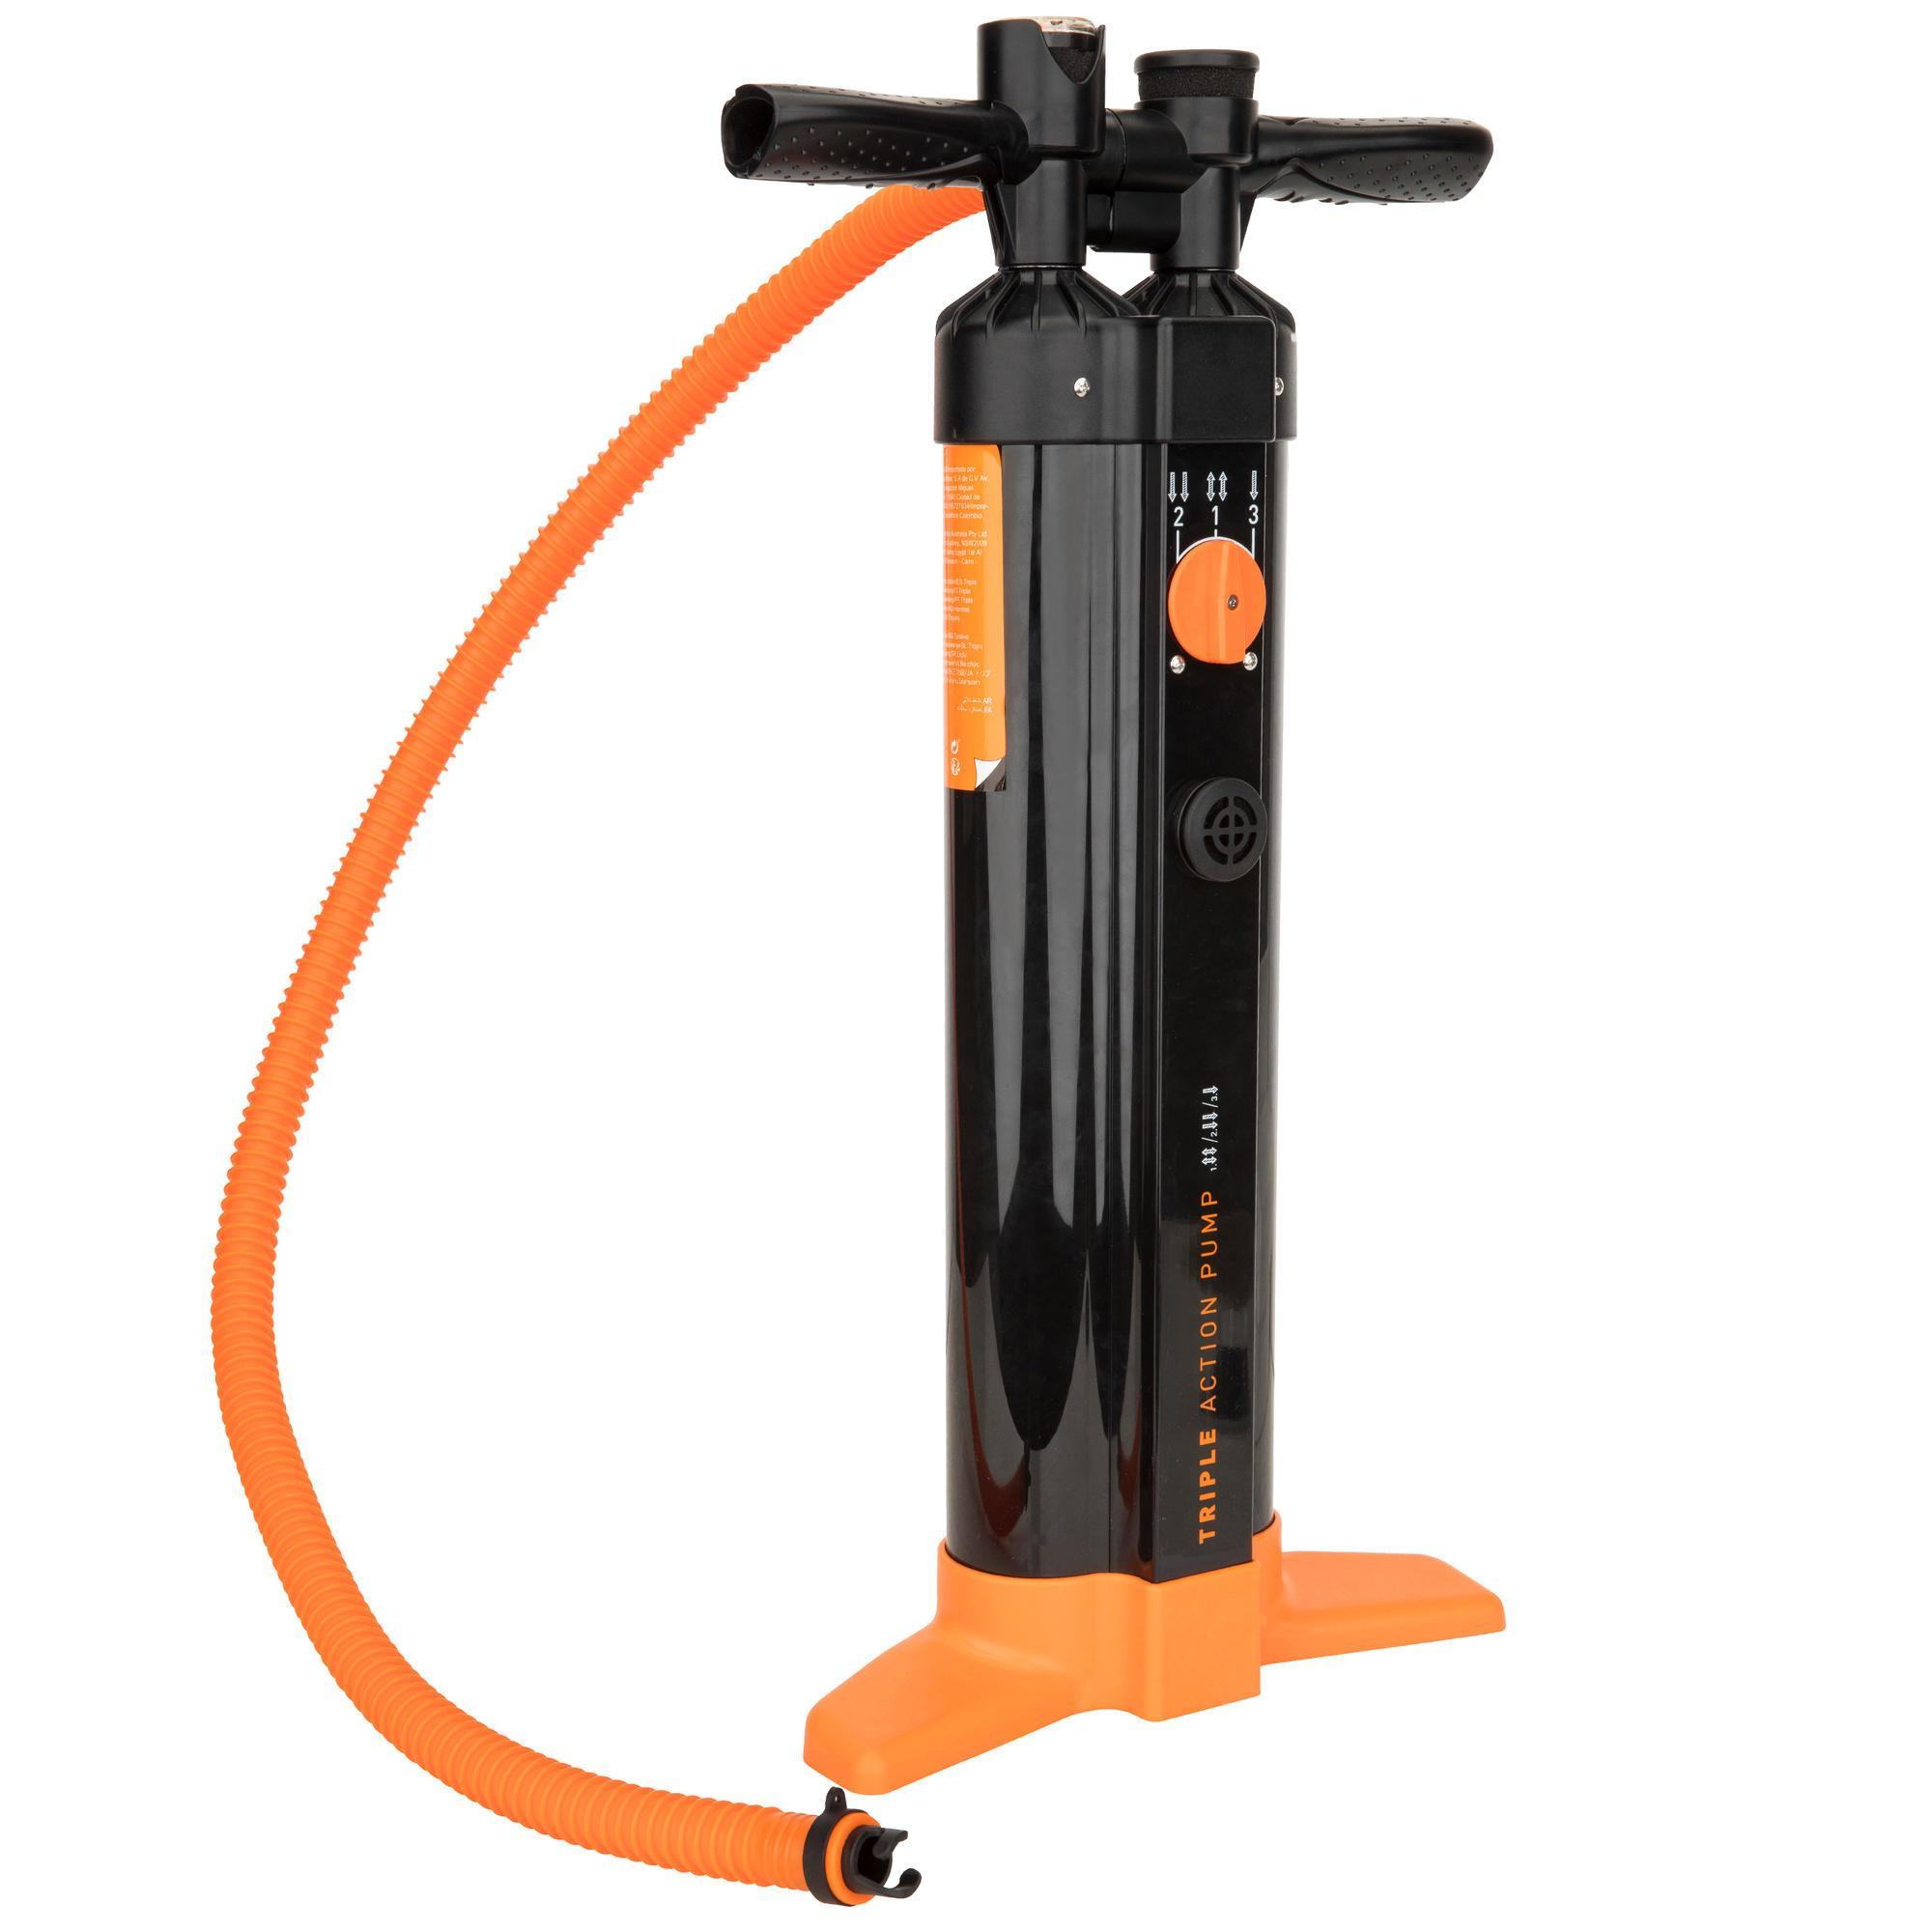 Itiwit SUP Board Handpumpe 20 PSI 3-stufig schwarz/orange